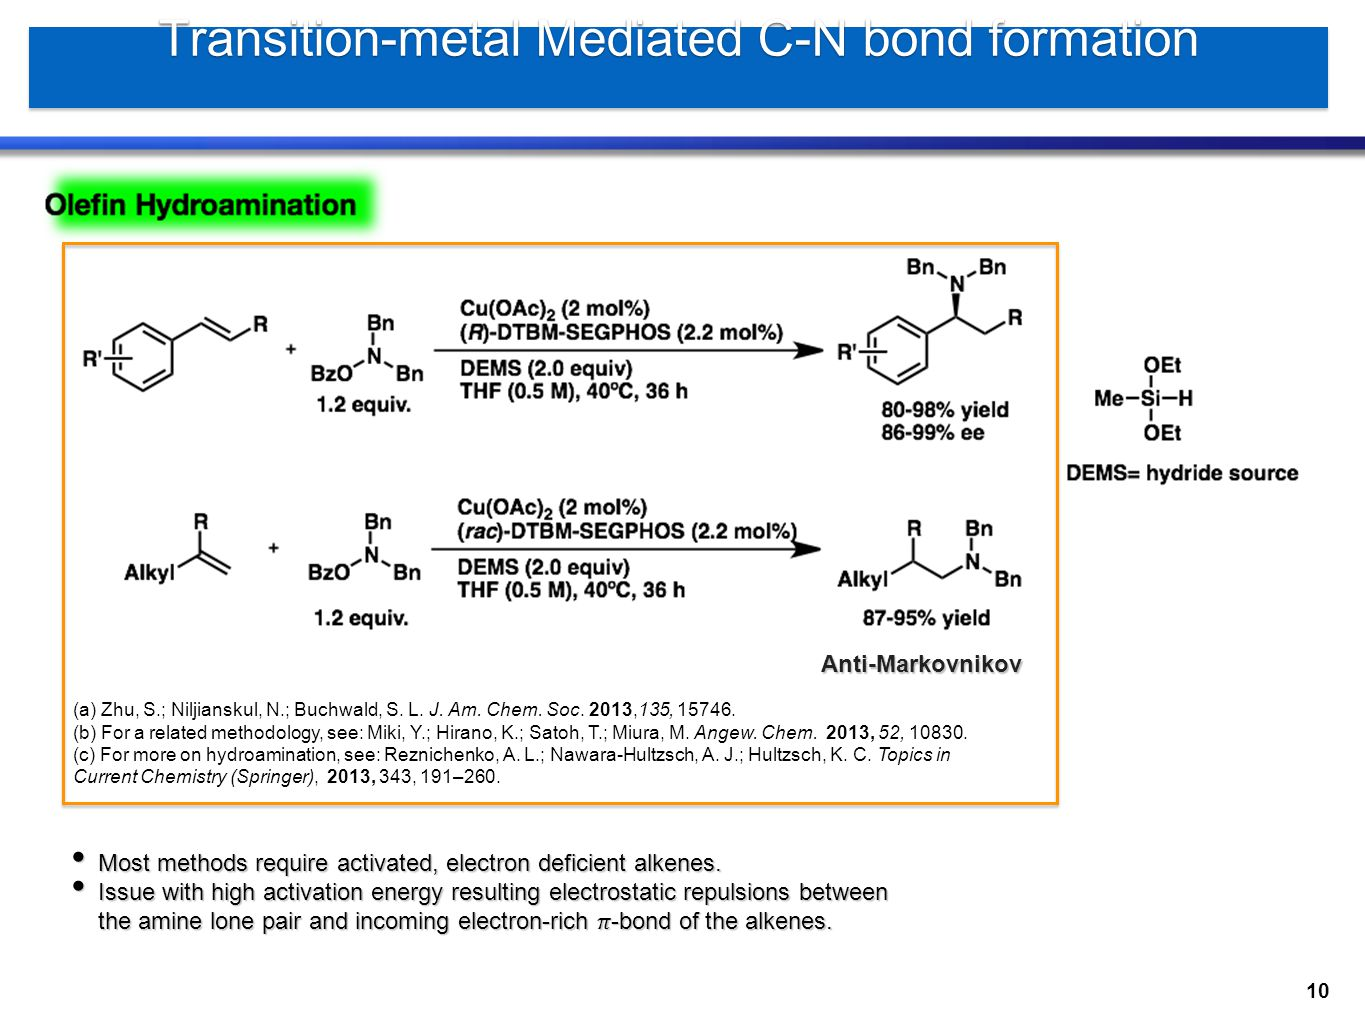 Transition-metal Mediated C-N bond formation